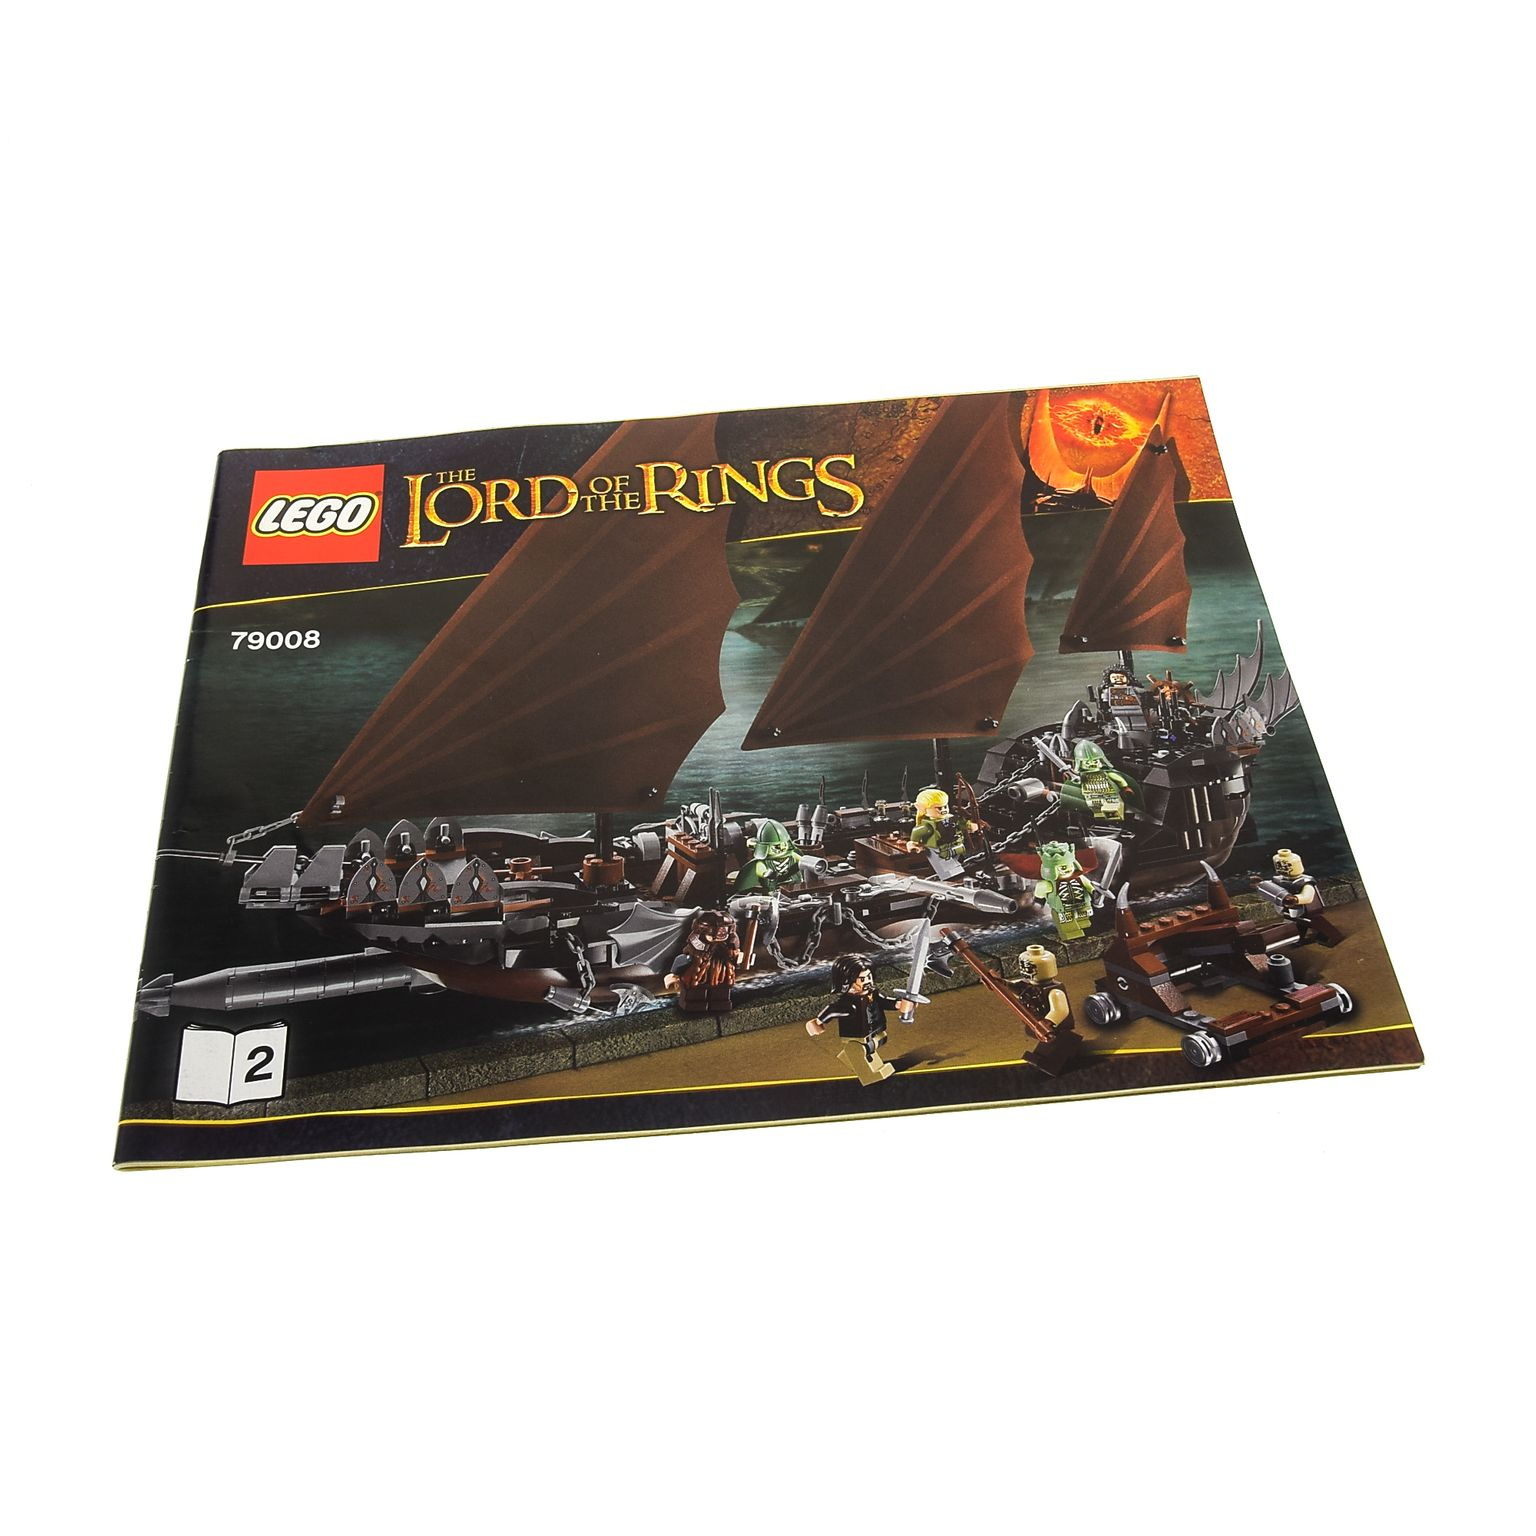 1 X Lego Brick Instructions The Lord Of The Rings Pirate Ship Ambush